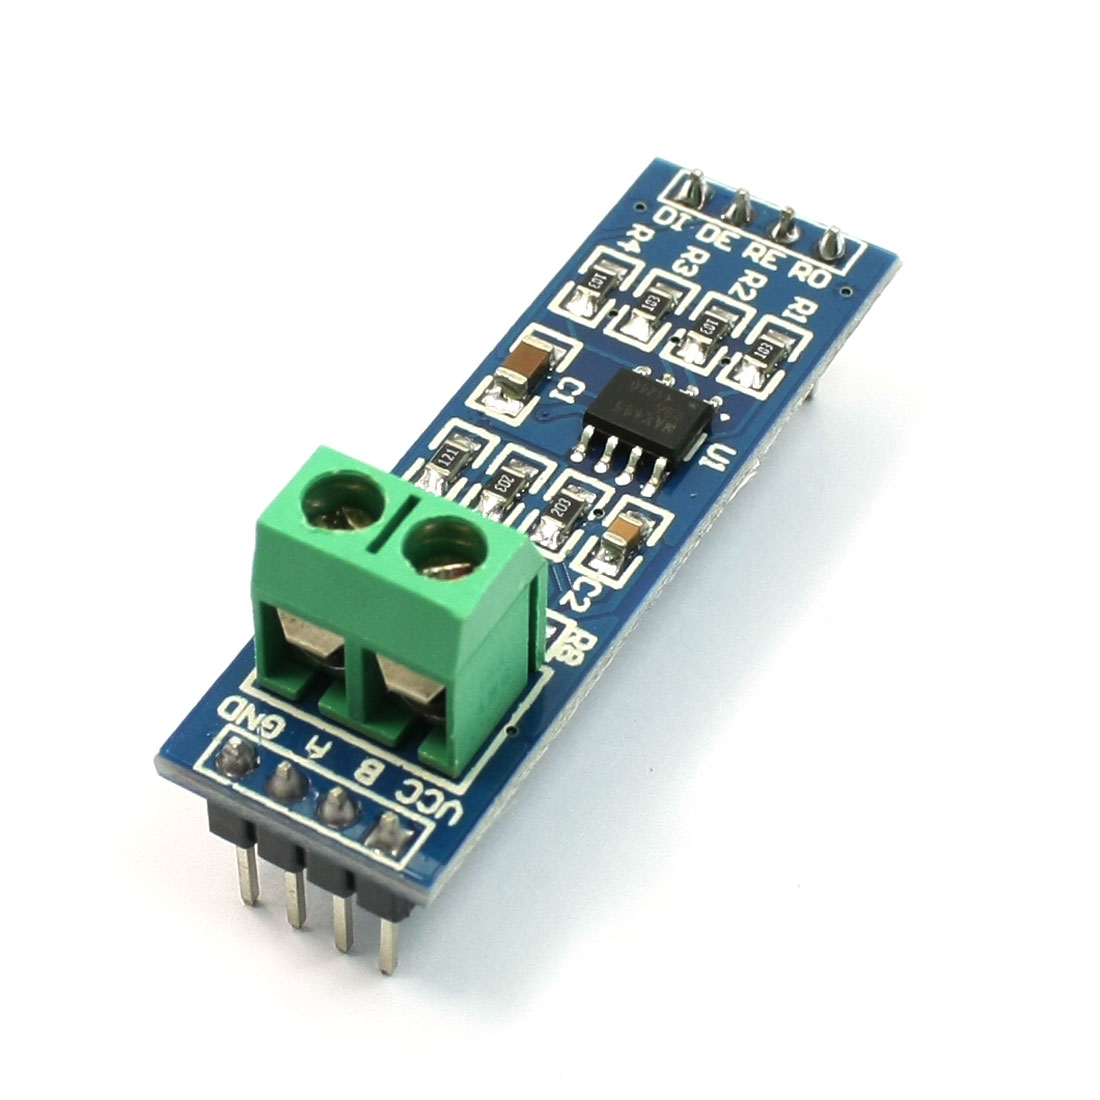 5V MAX485/RS485 Module TTL to RS-485 Module MCU Development Board